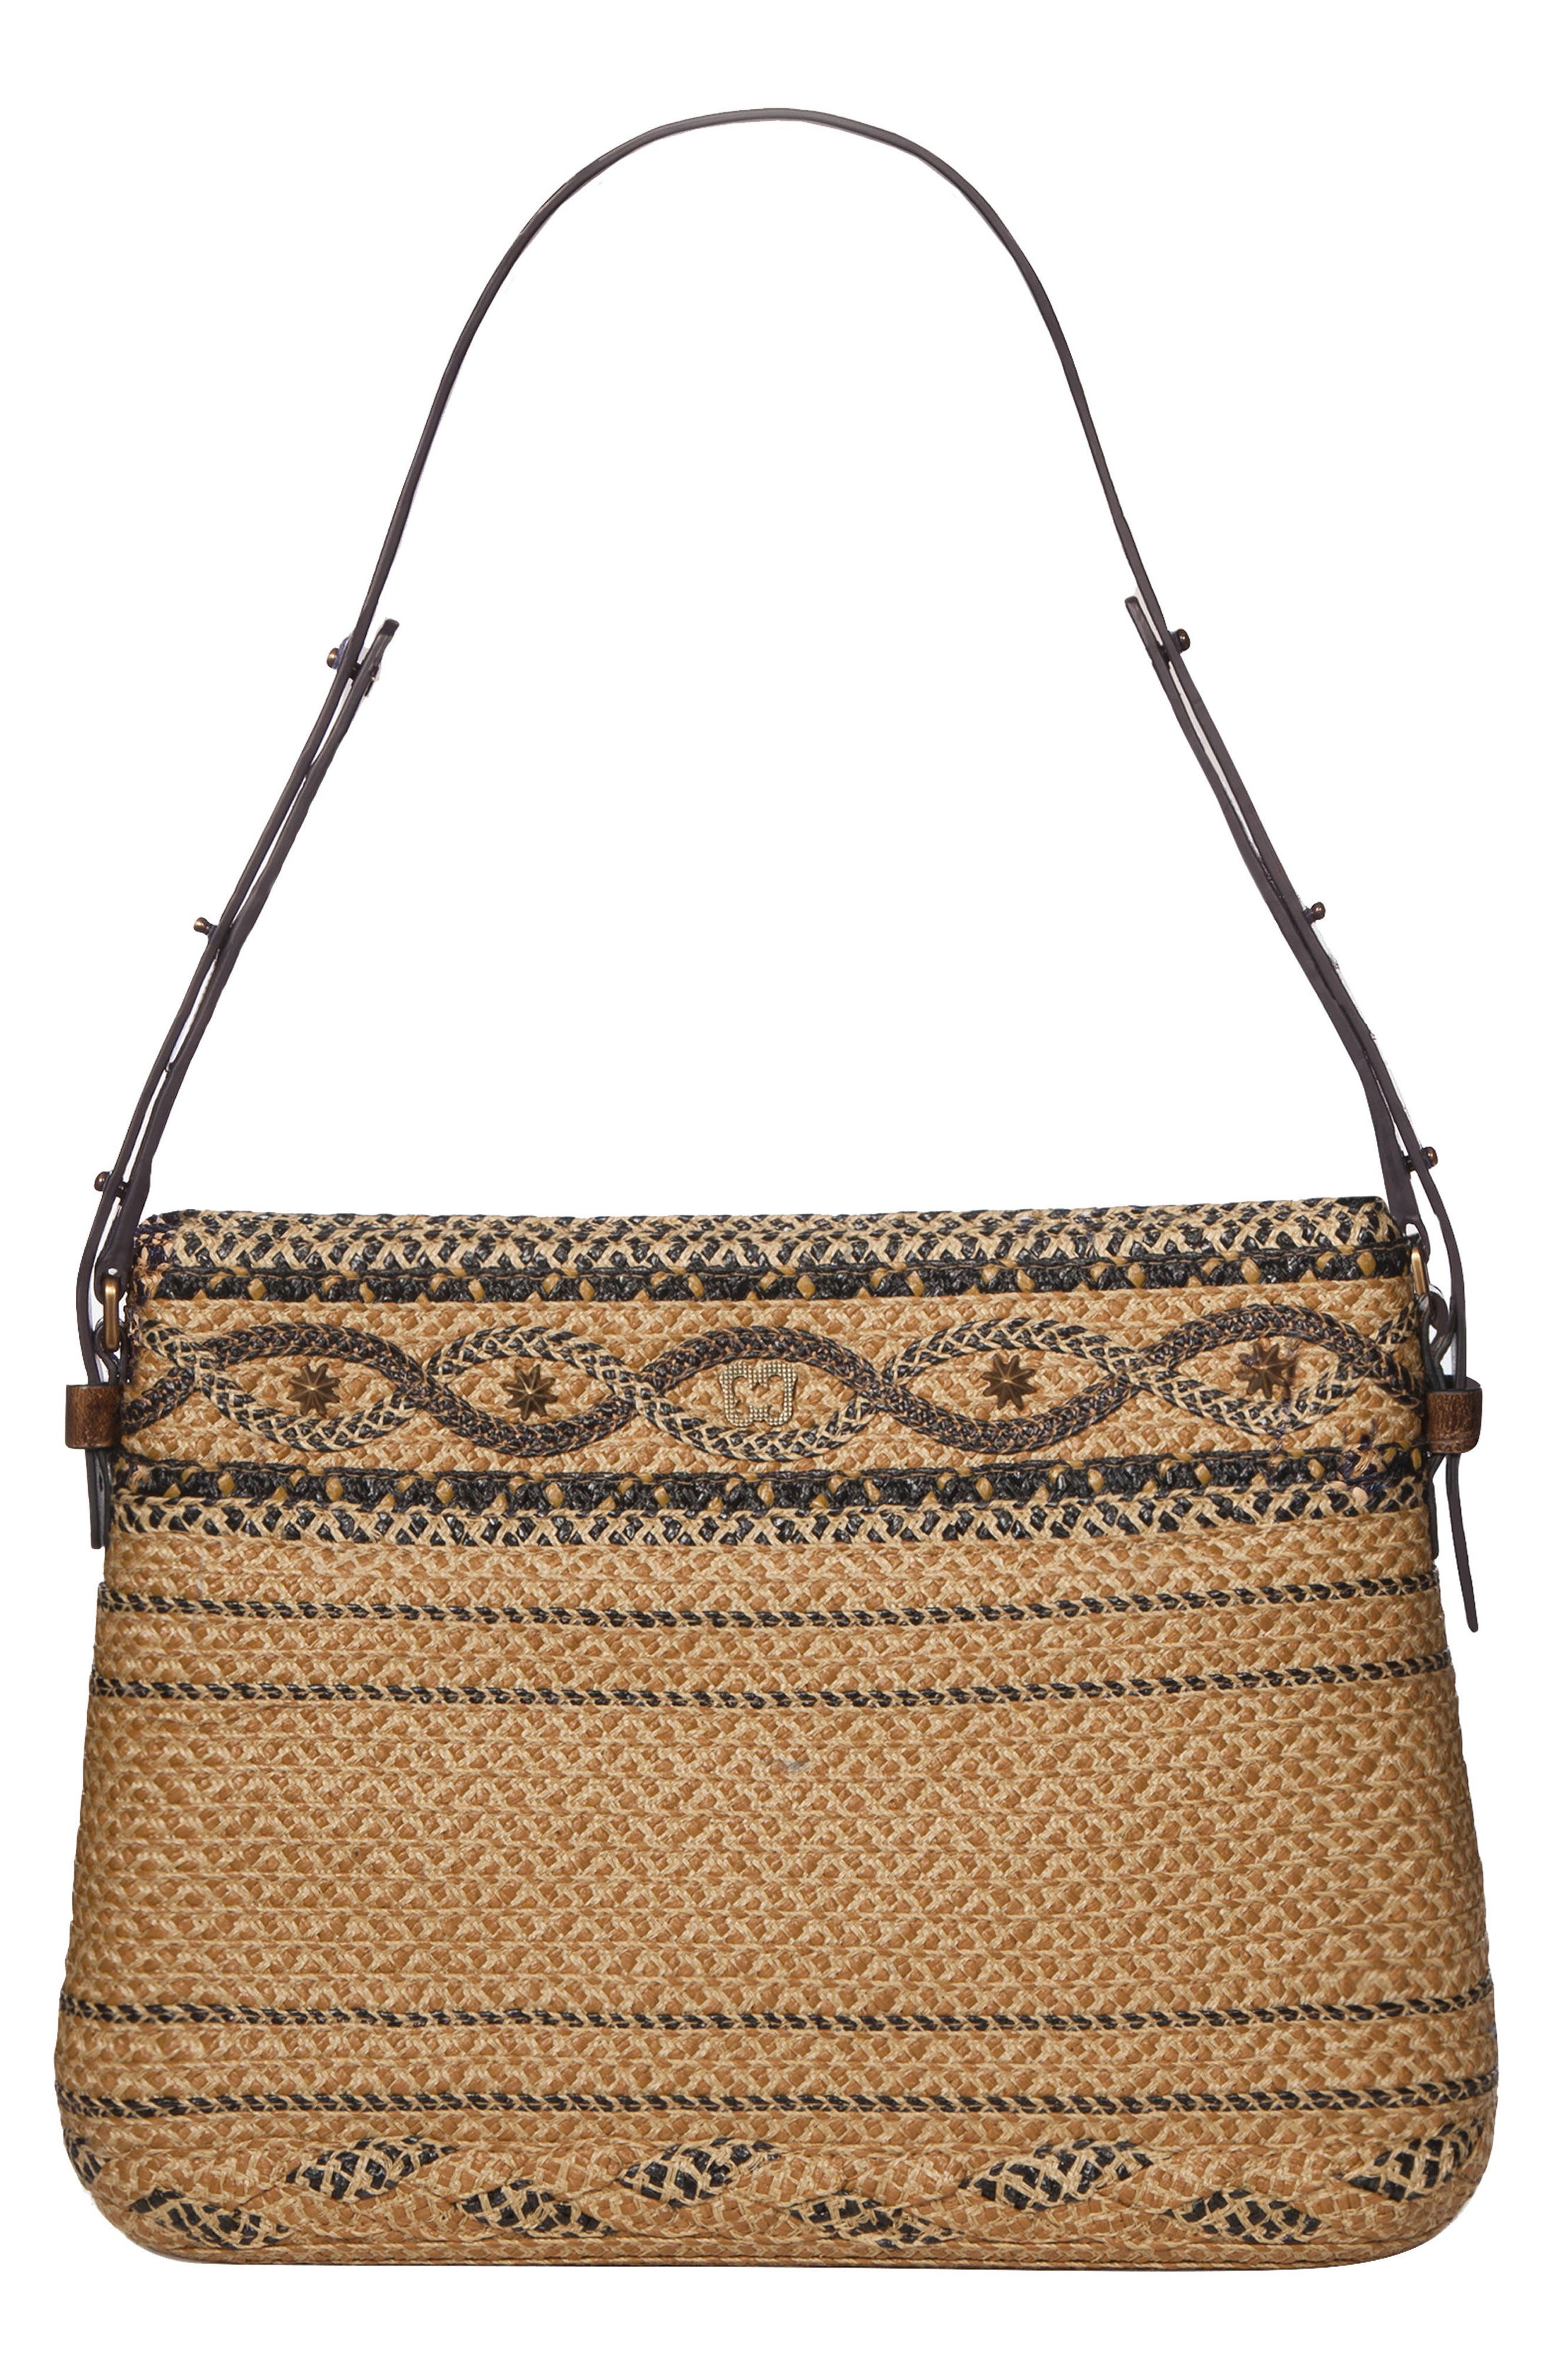 ERIC JAVITS BHUTAN SQUISHEE SHOULDER BAG - BEIGE